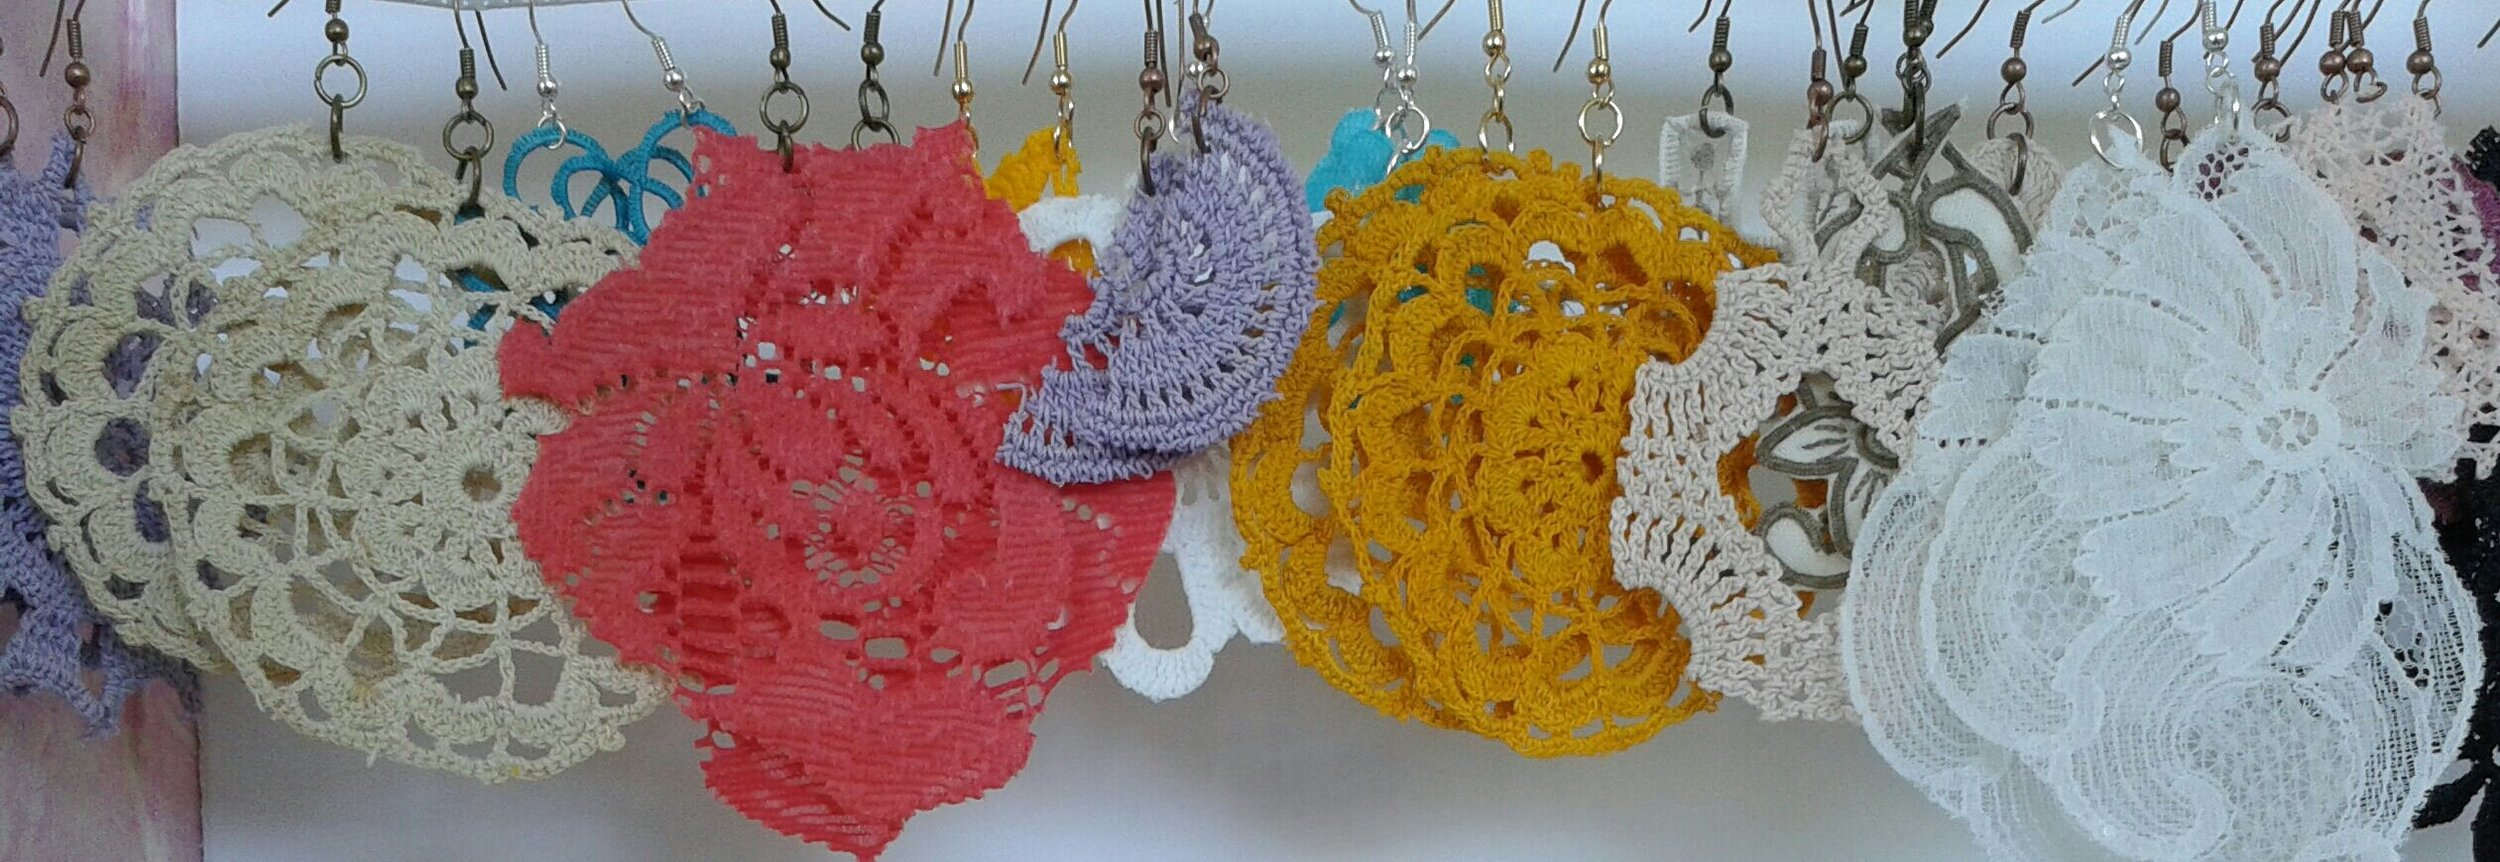 Doily and lace earrings - hand dyed and cut